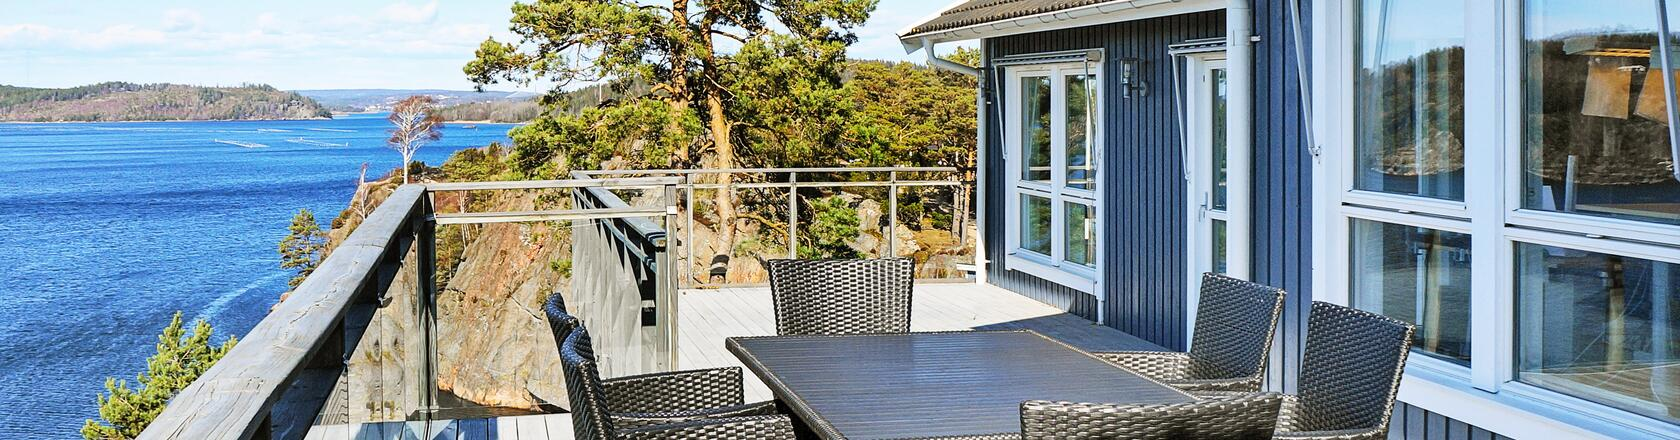 Orust in Sweden - Rent a holiday home in with DanCenter